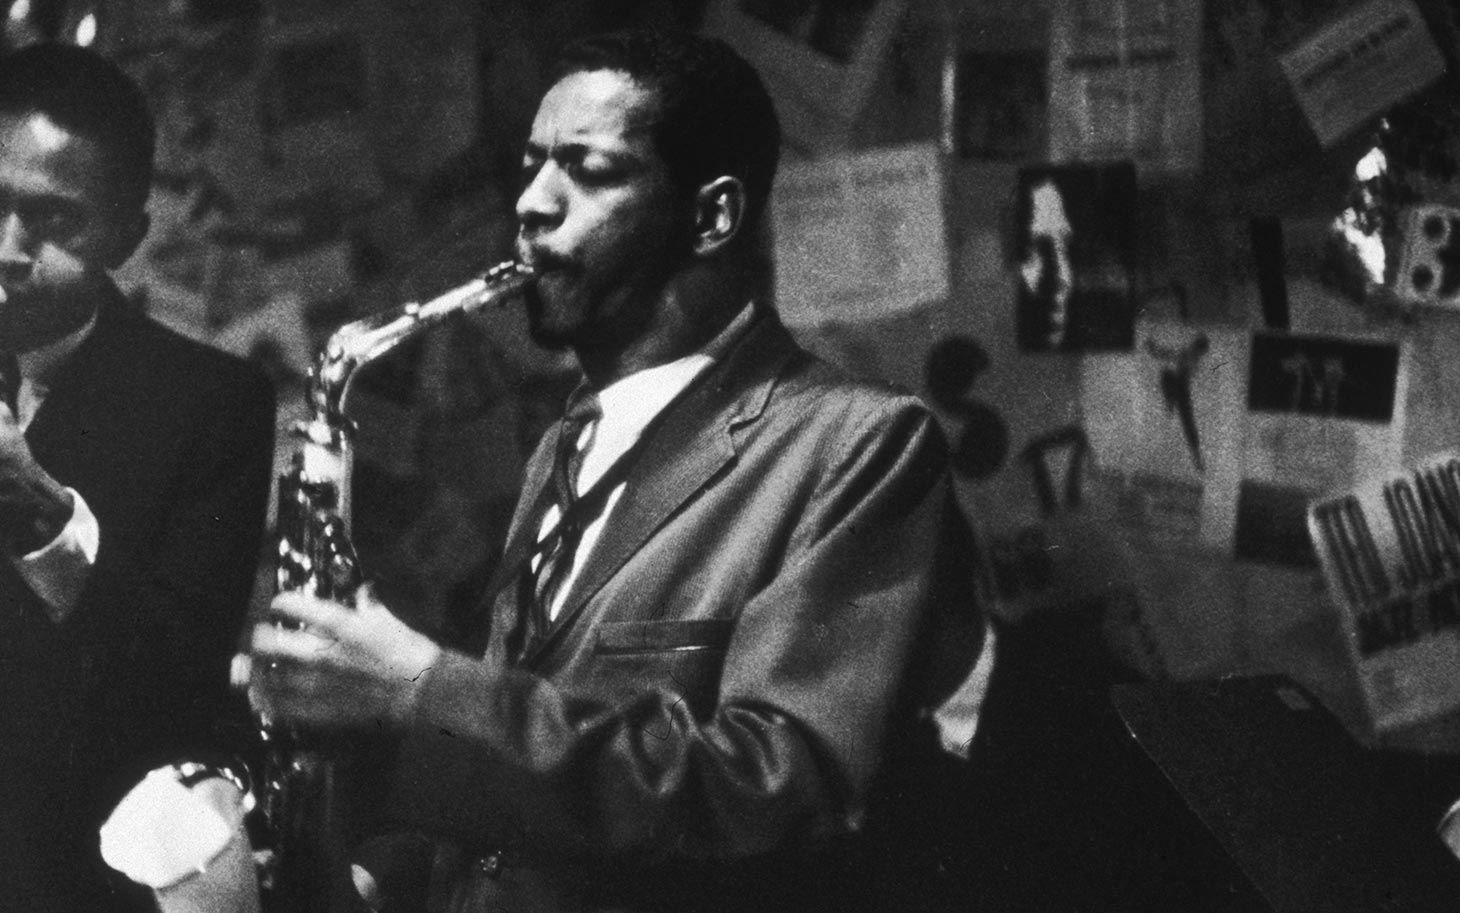 17th November 1959: Ornette Coleman plays the saxophone and Don Cherry (1936-1995) plays the trumpet at the 5 Spot Cafe, New York City. (Photo by Bob Parent/Hulton Archive/Getty Images)